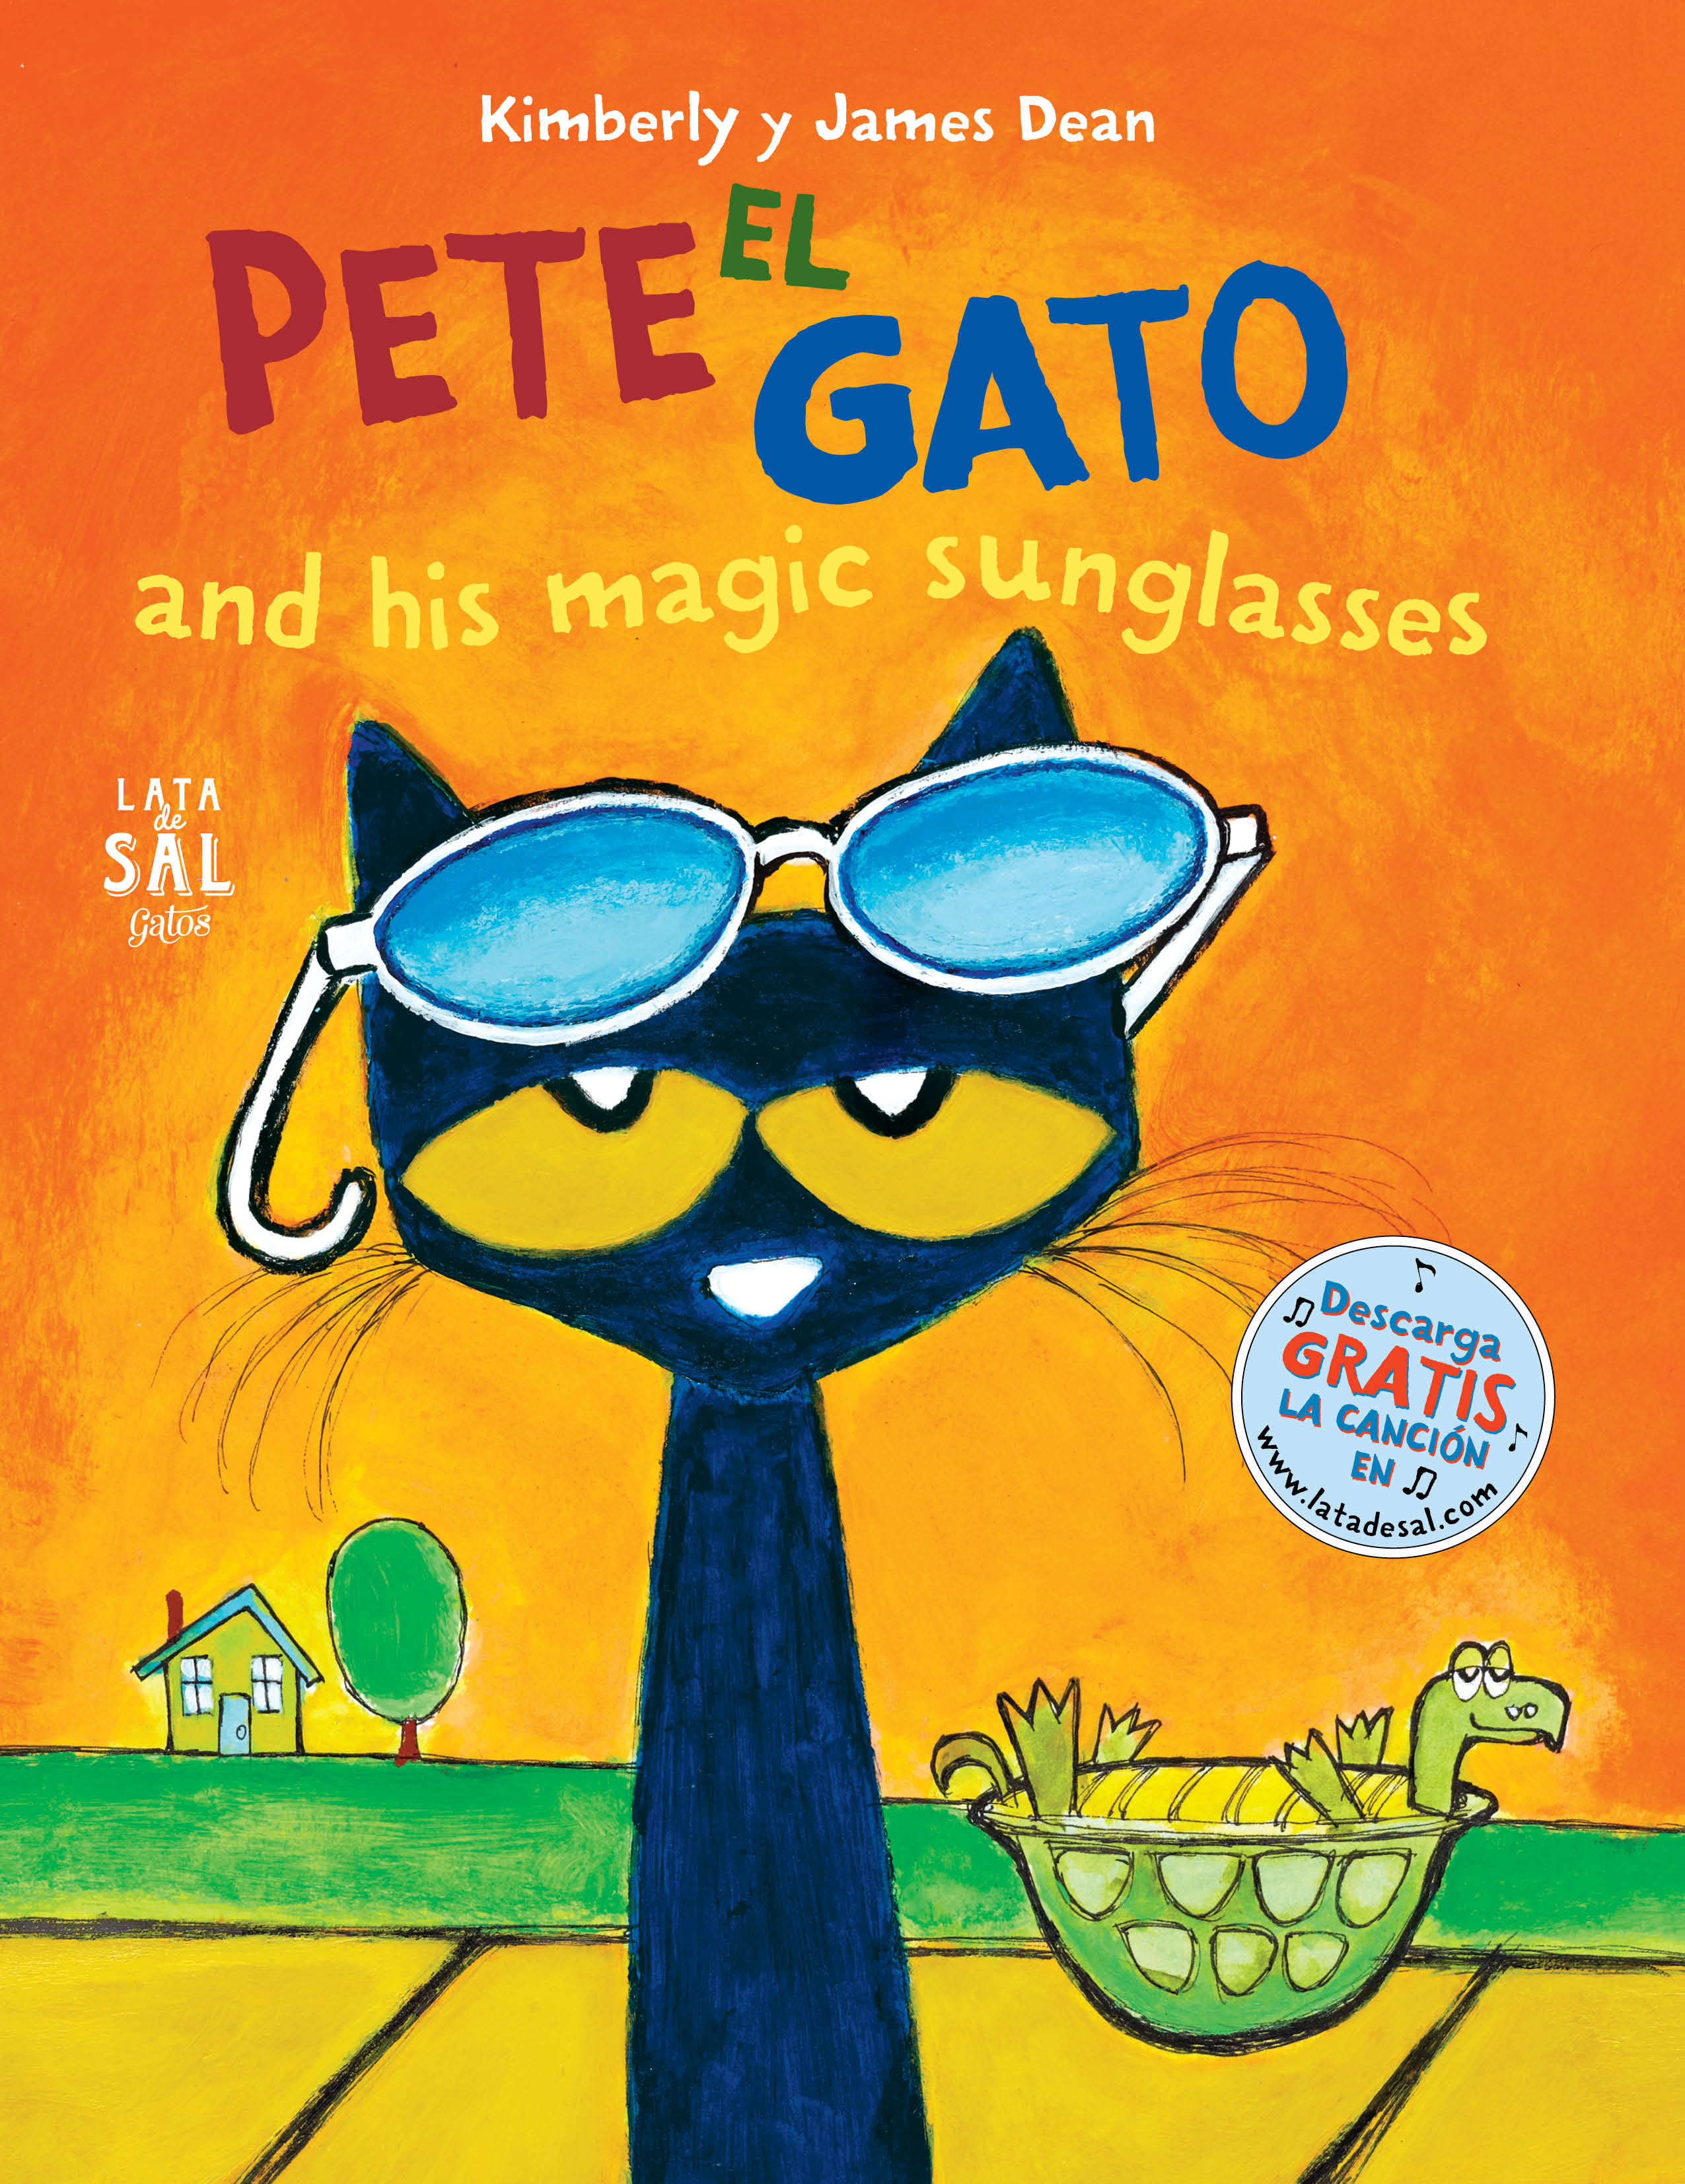 PETE EL GATO AND HIS MAGIC SUNGLASSES.